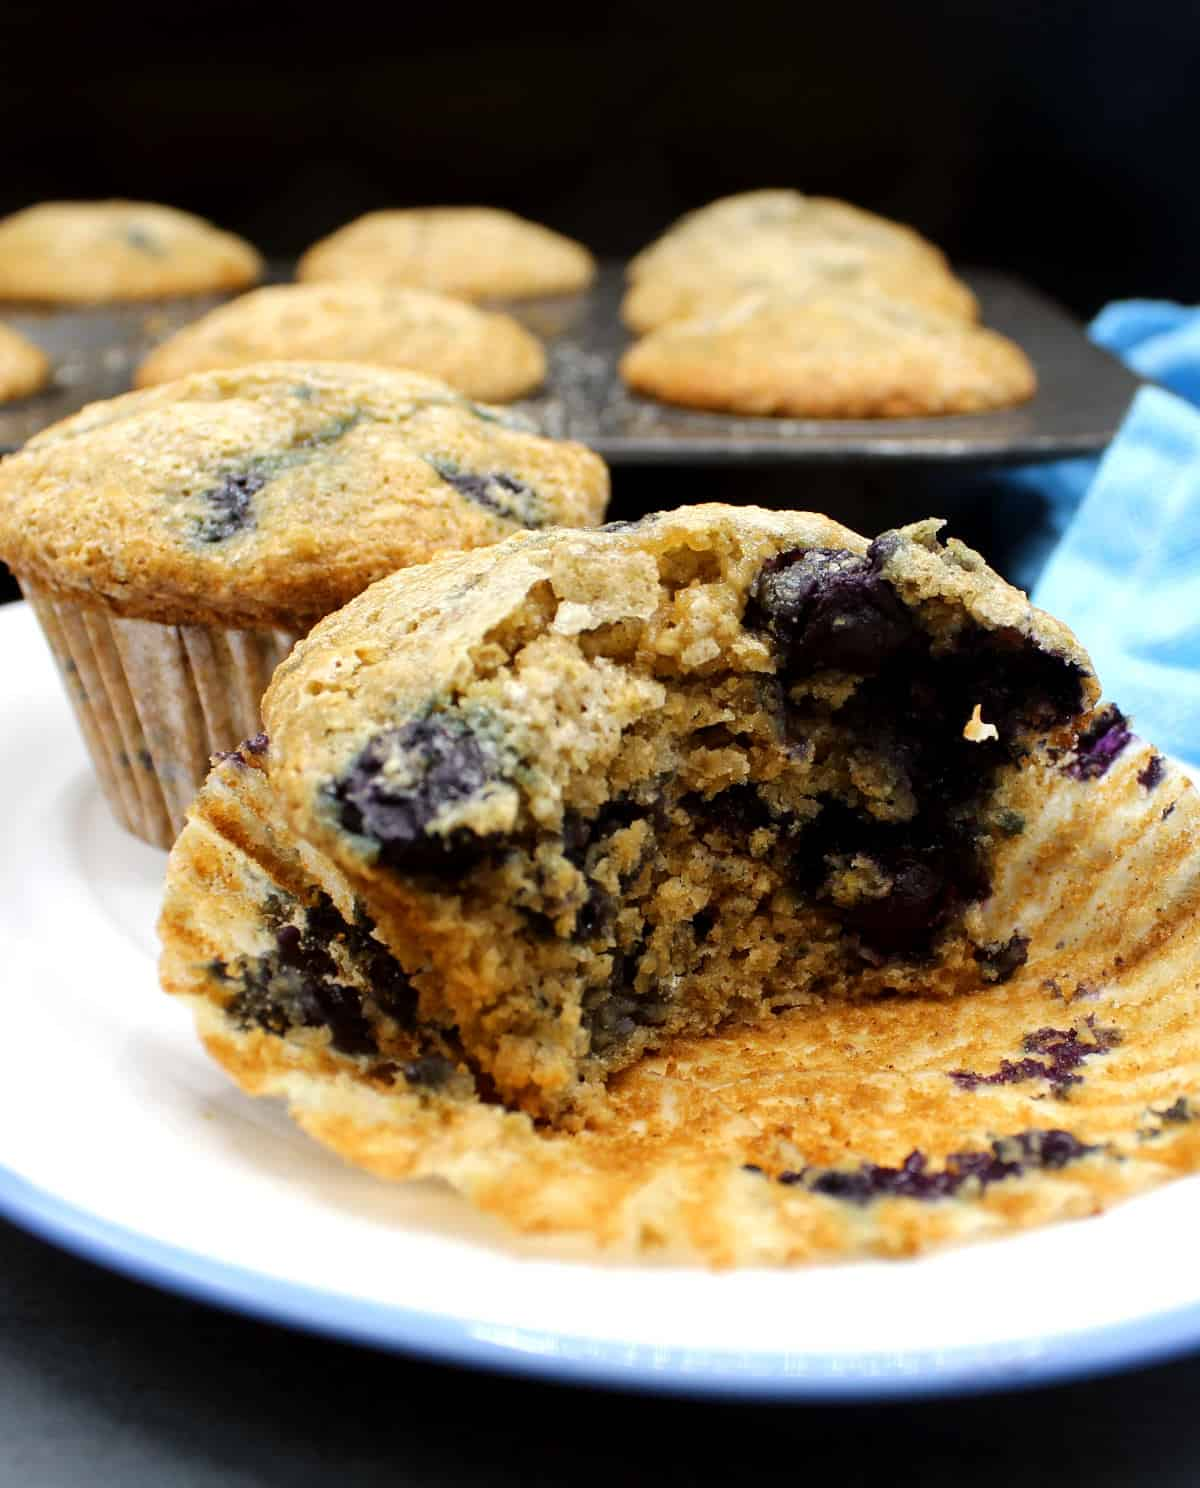 Cross section of a blueberry muffin that shows a moist, light, airy, wholegrain crumb packed with pockets of juicy blueberries.